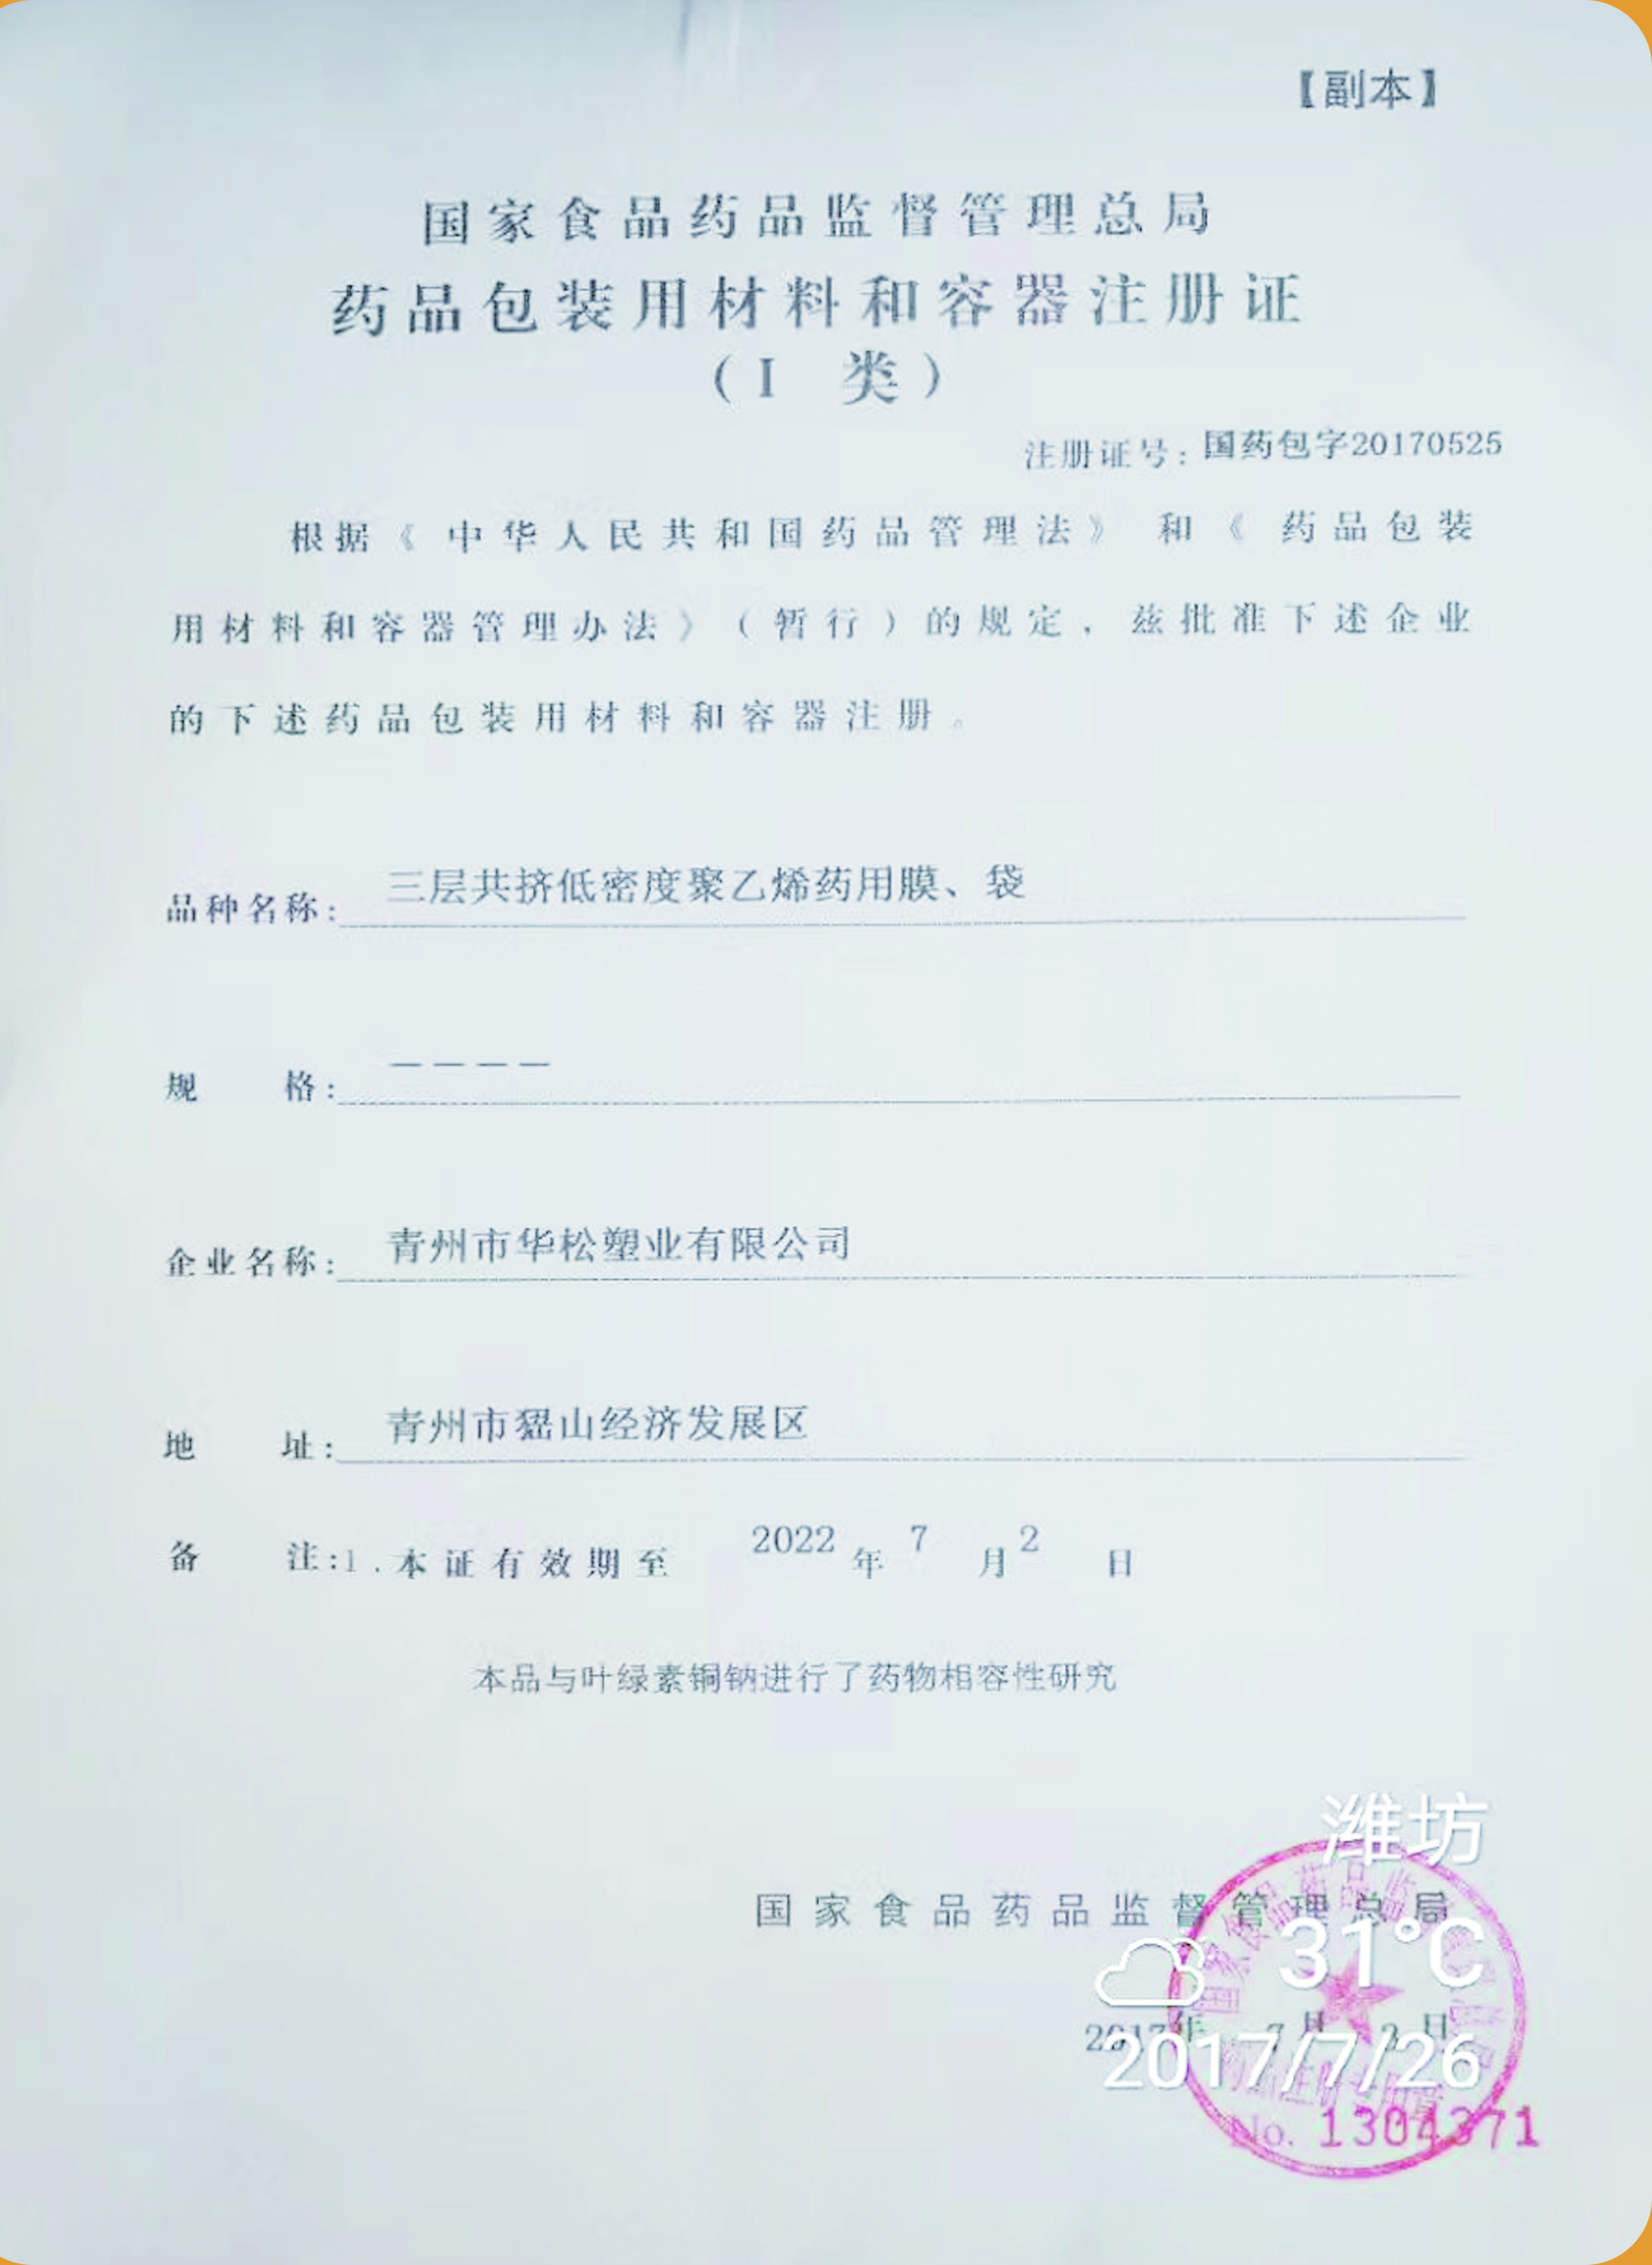 Registration Certificate for Pharmaceutical Packaging Materials and Containers (